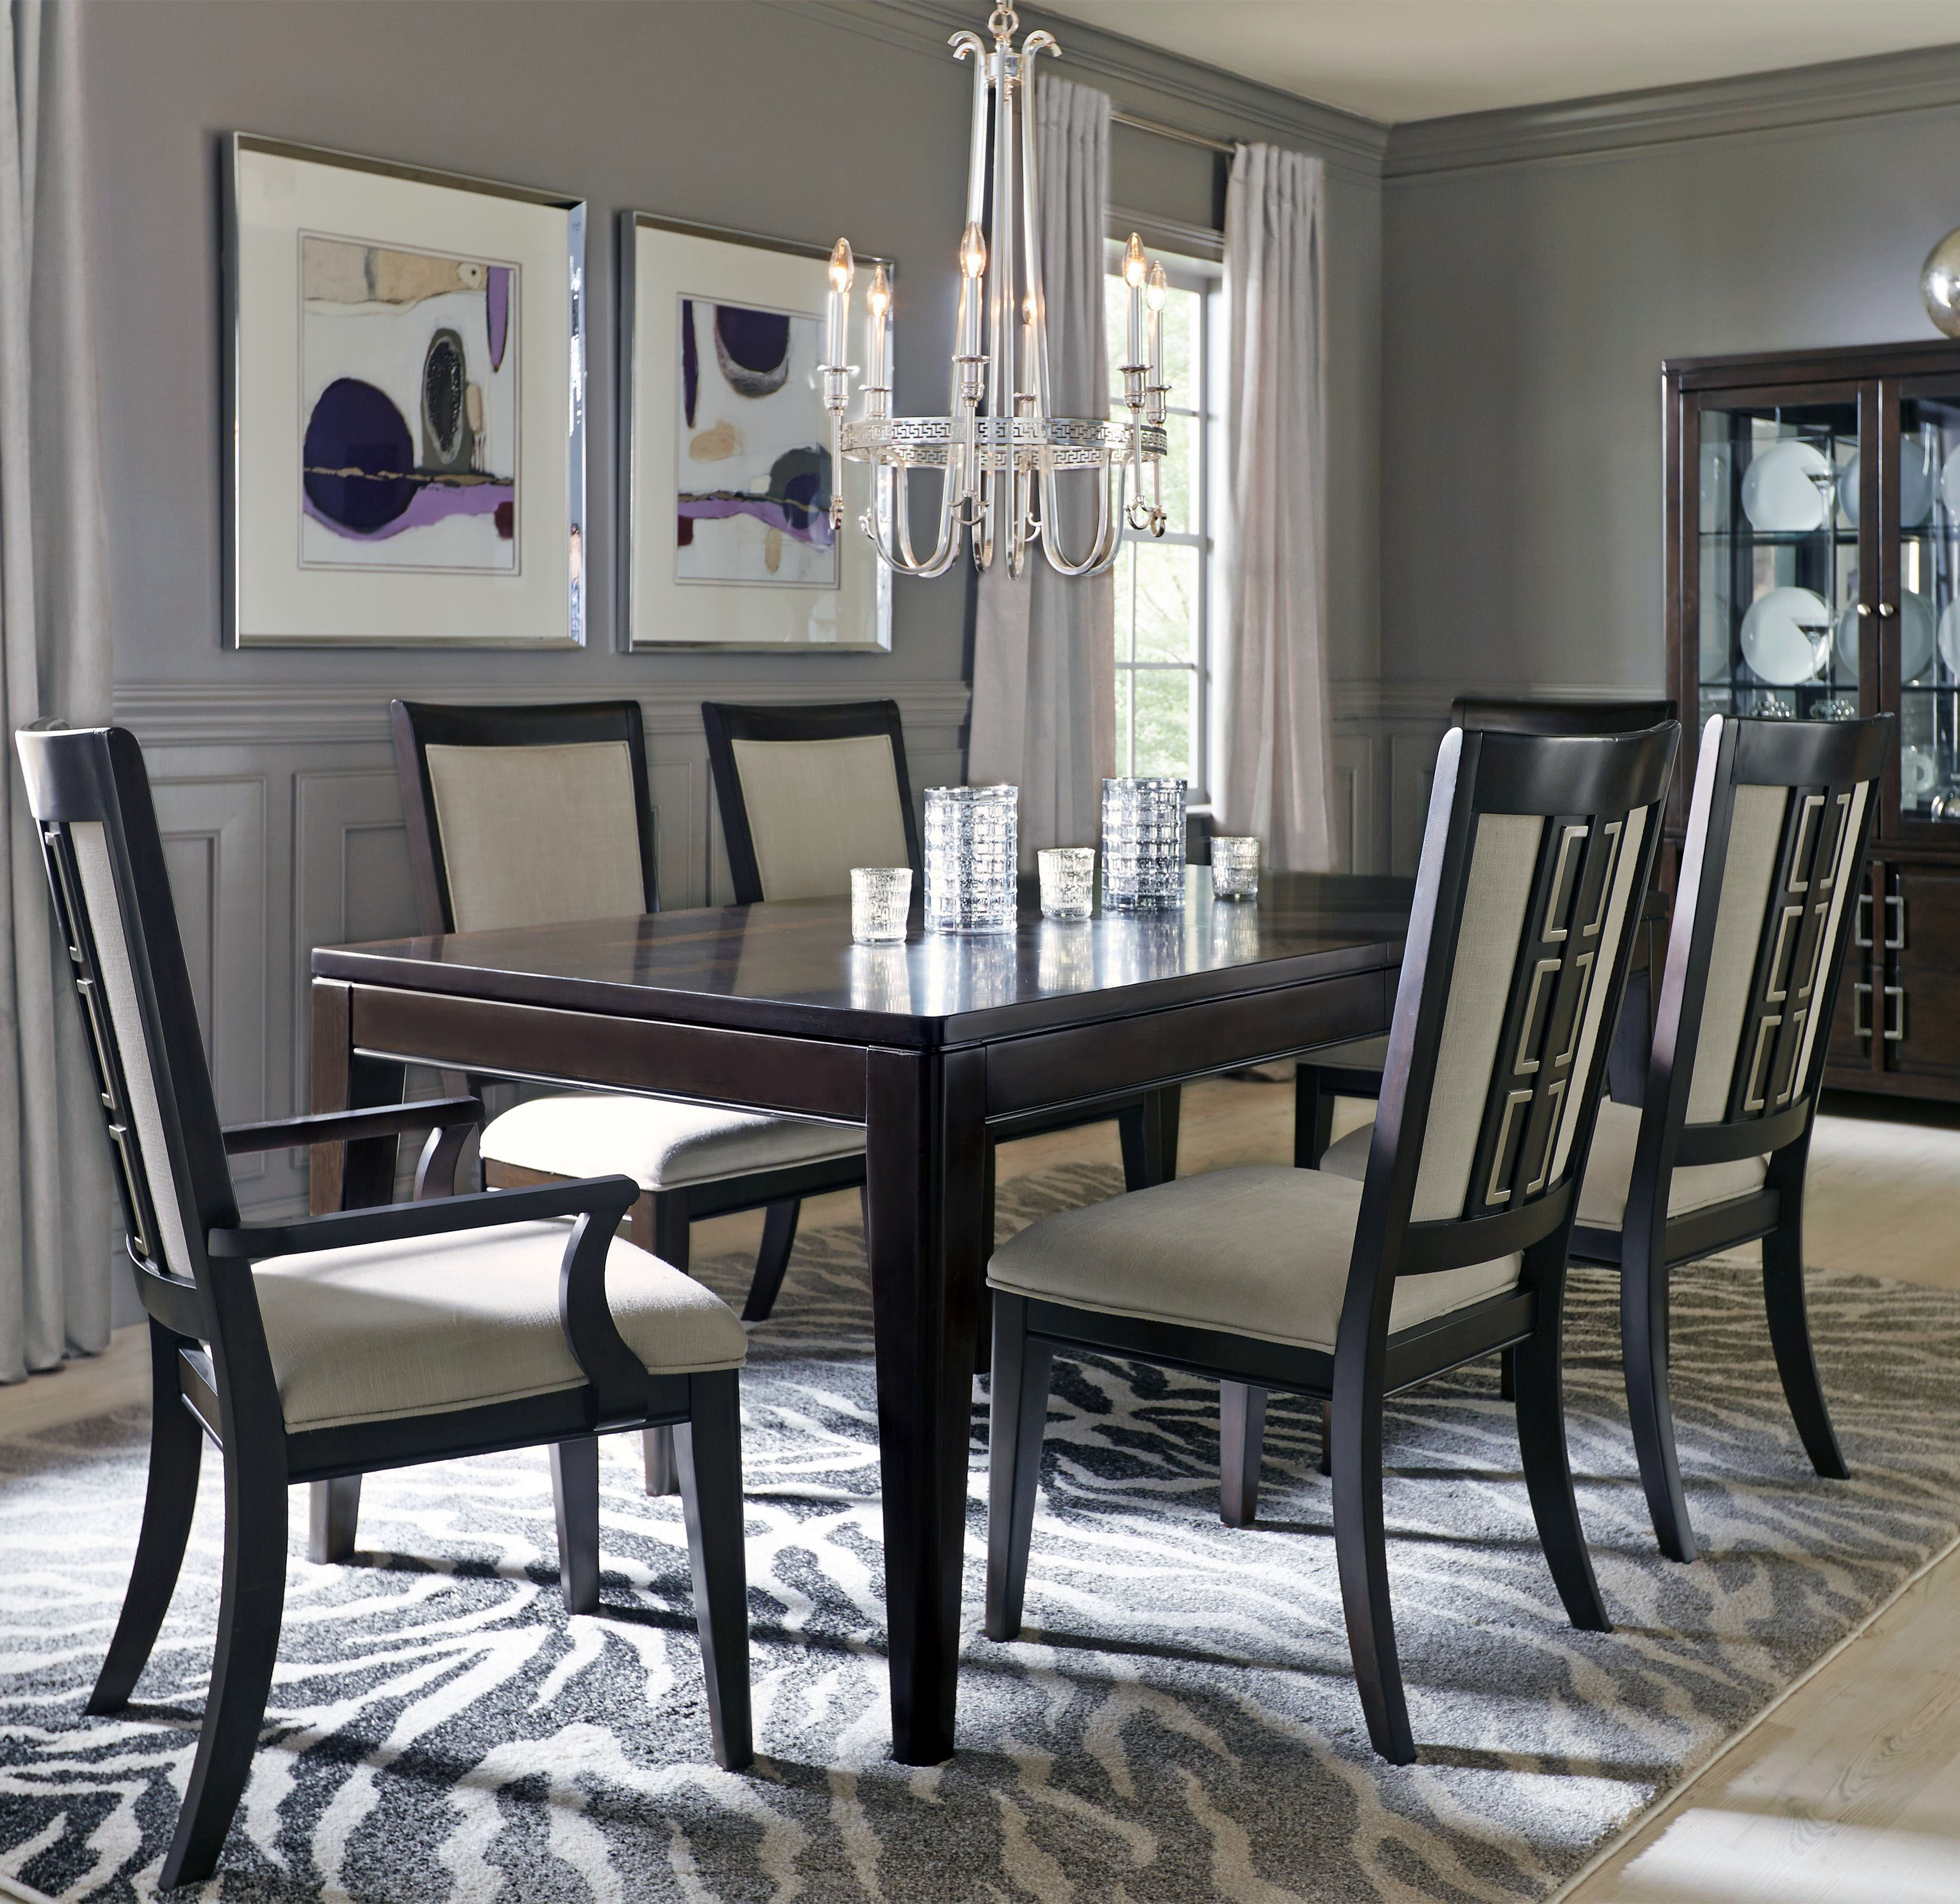 32 Stylish Dining Room Ideas To Impress Your Dinner Guests: Modern Eating Area Design Ideas To Stress Your Guests